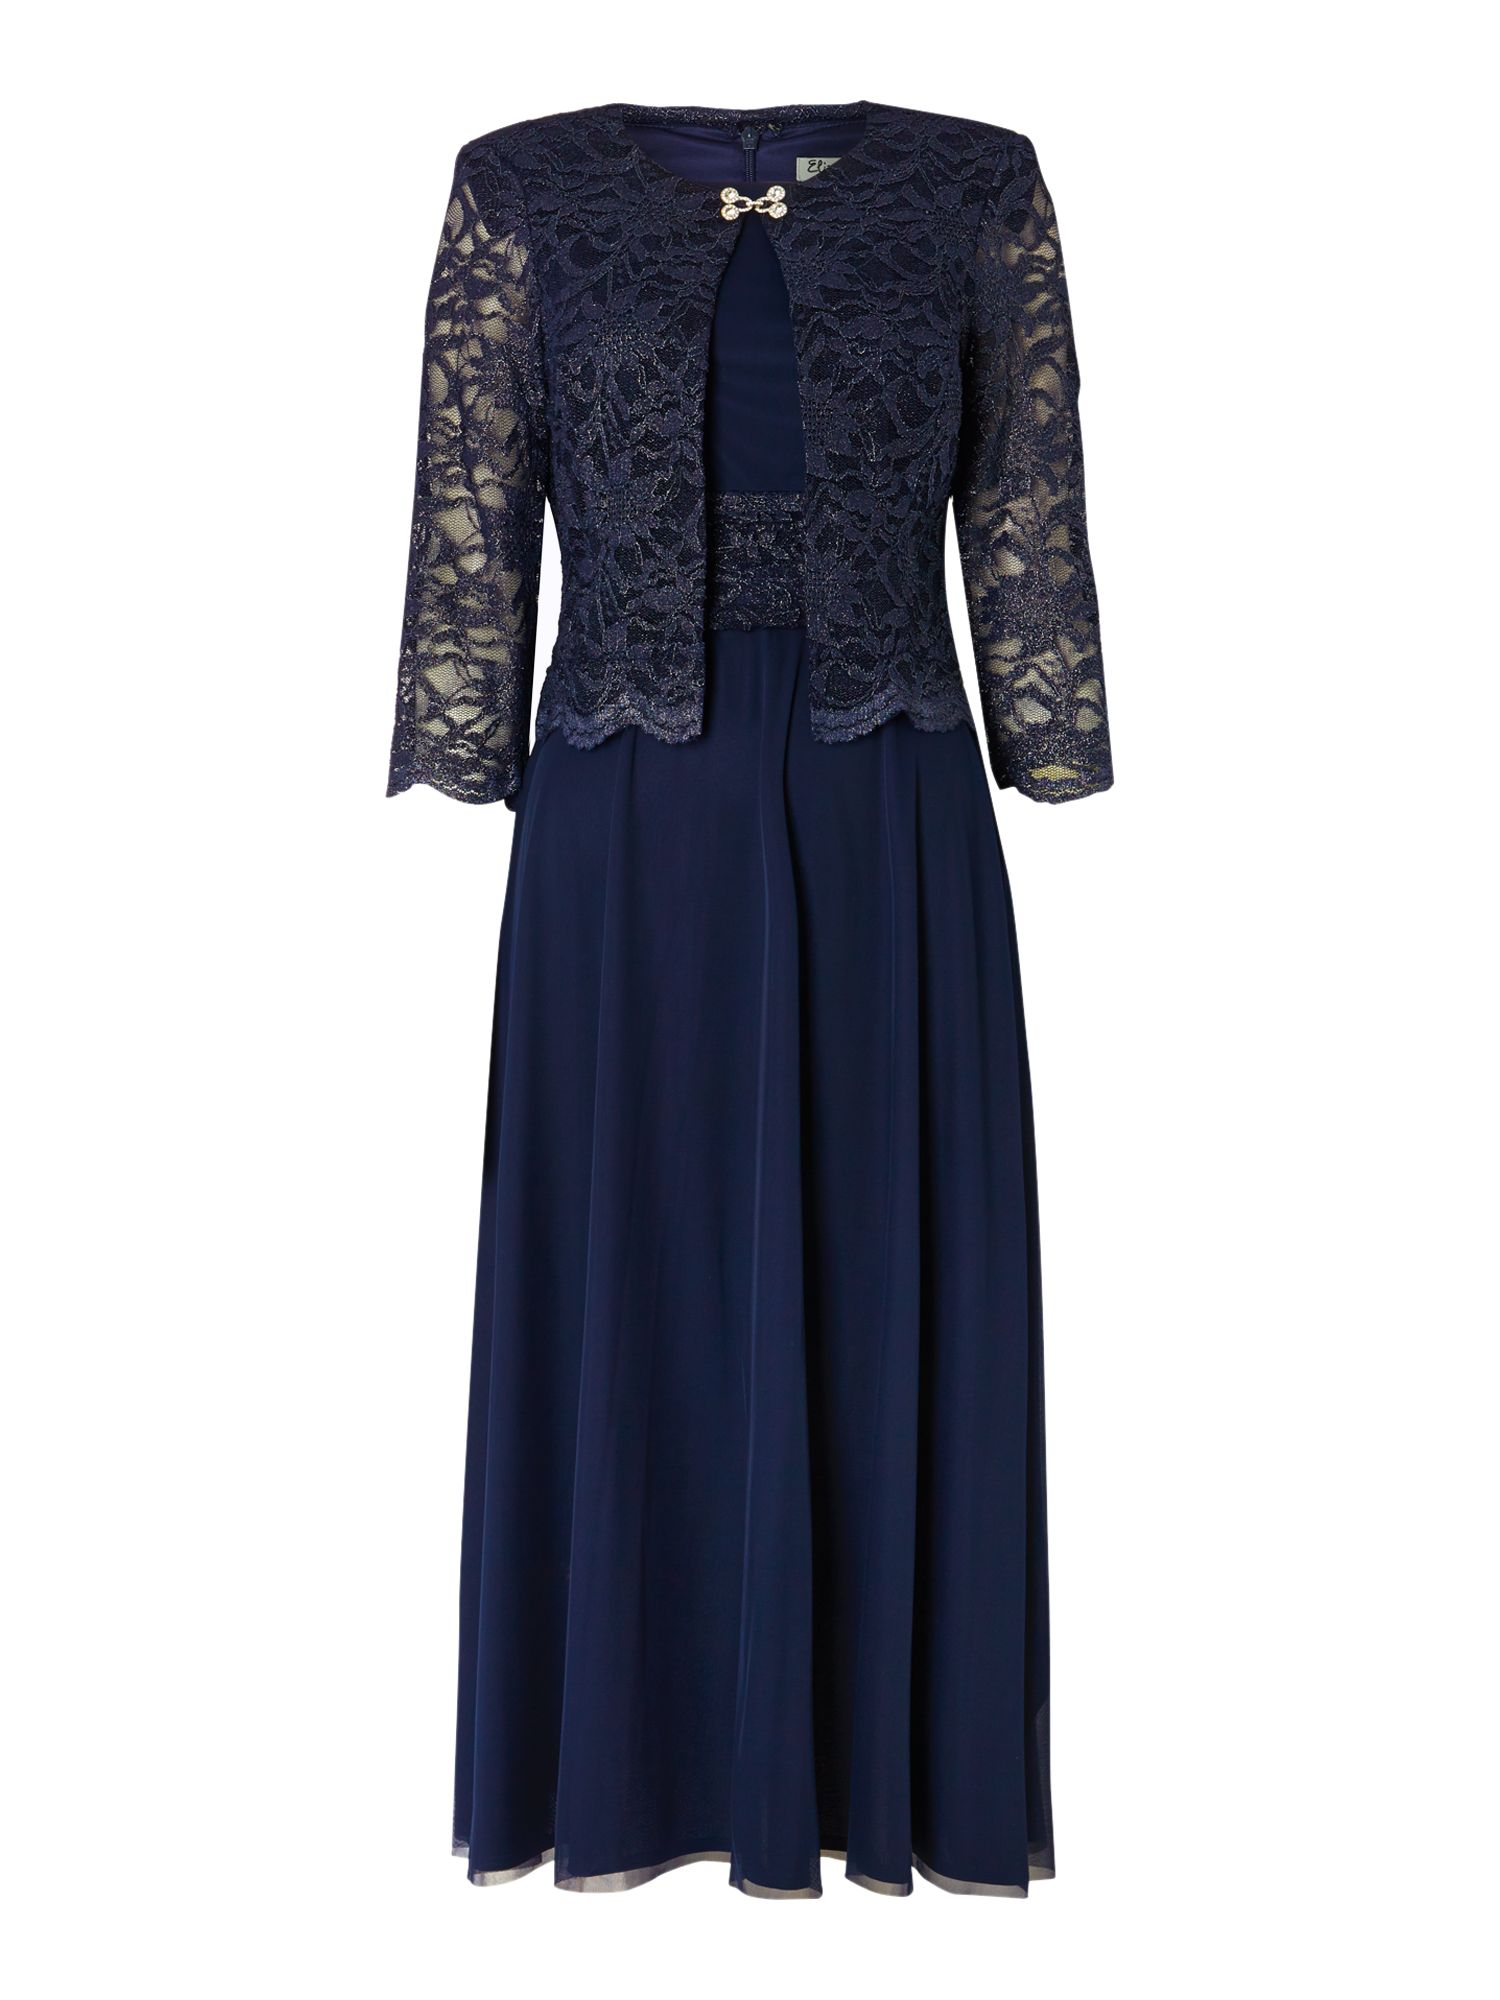 Eliza J Mesh and Lace Dress and Jacket, Navy